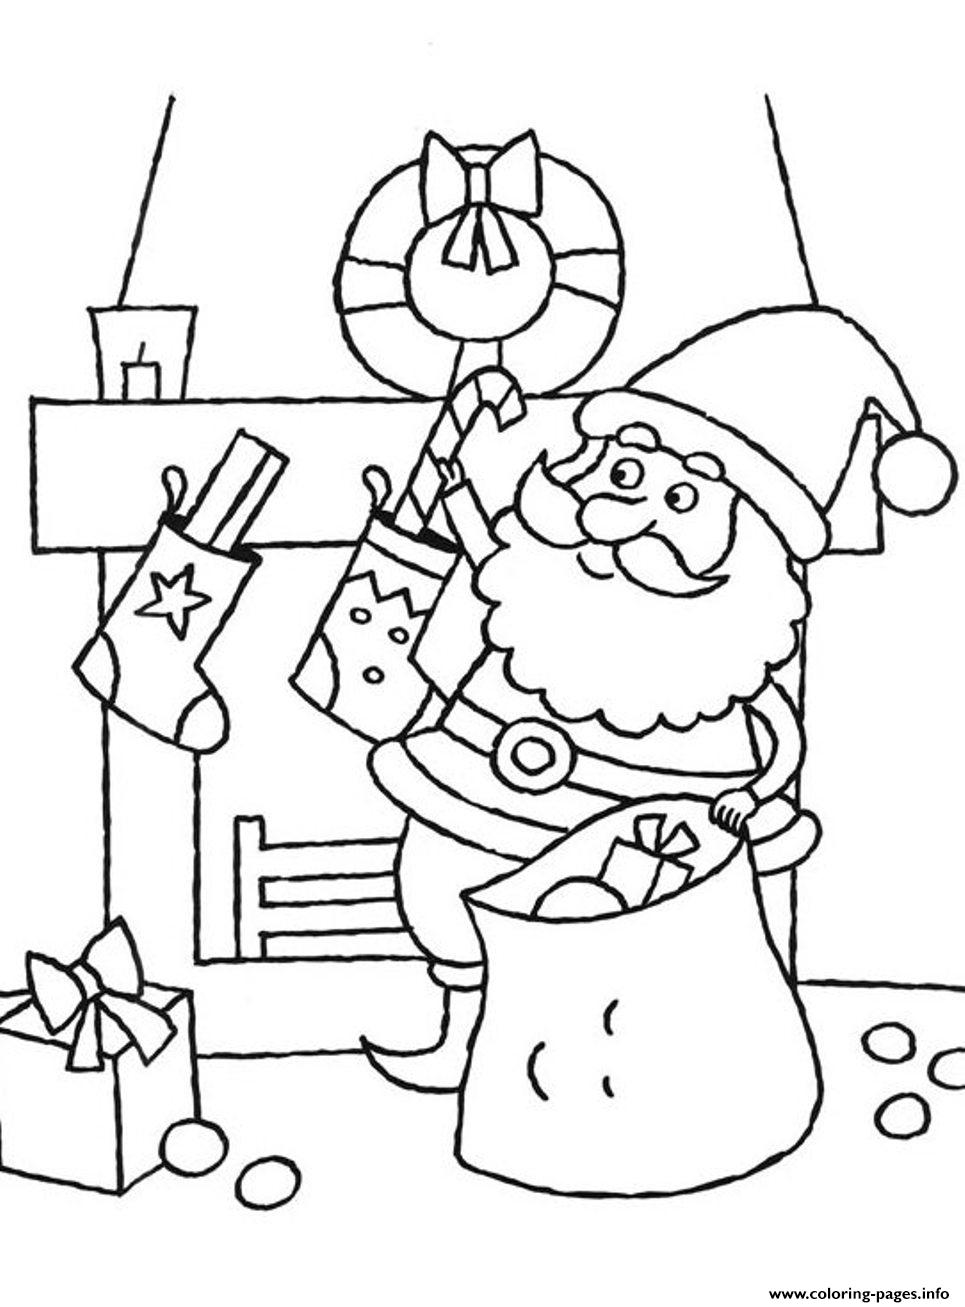 Free Printable Candy Cane Coloring Pages For Kids | 1307x965